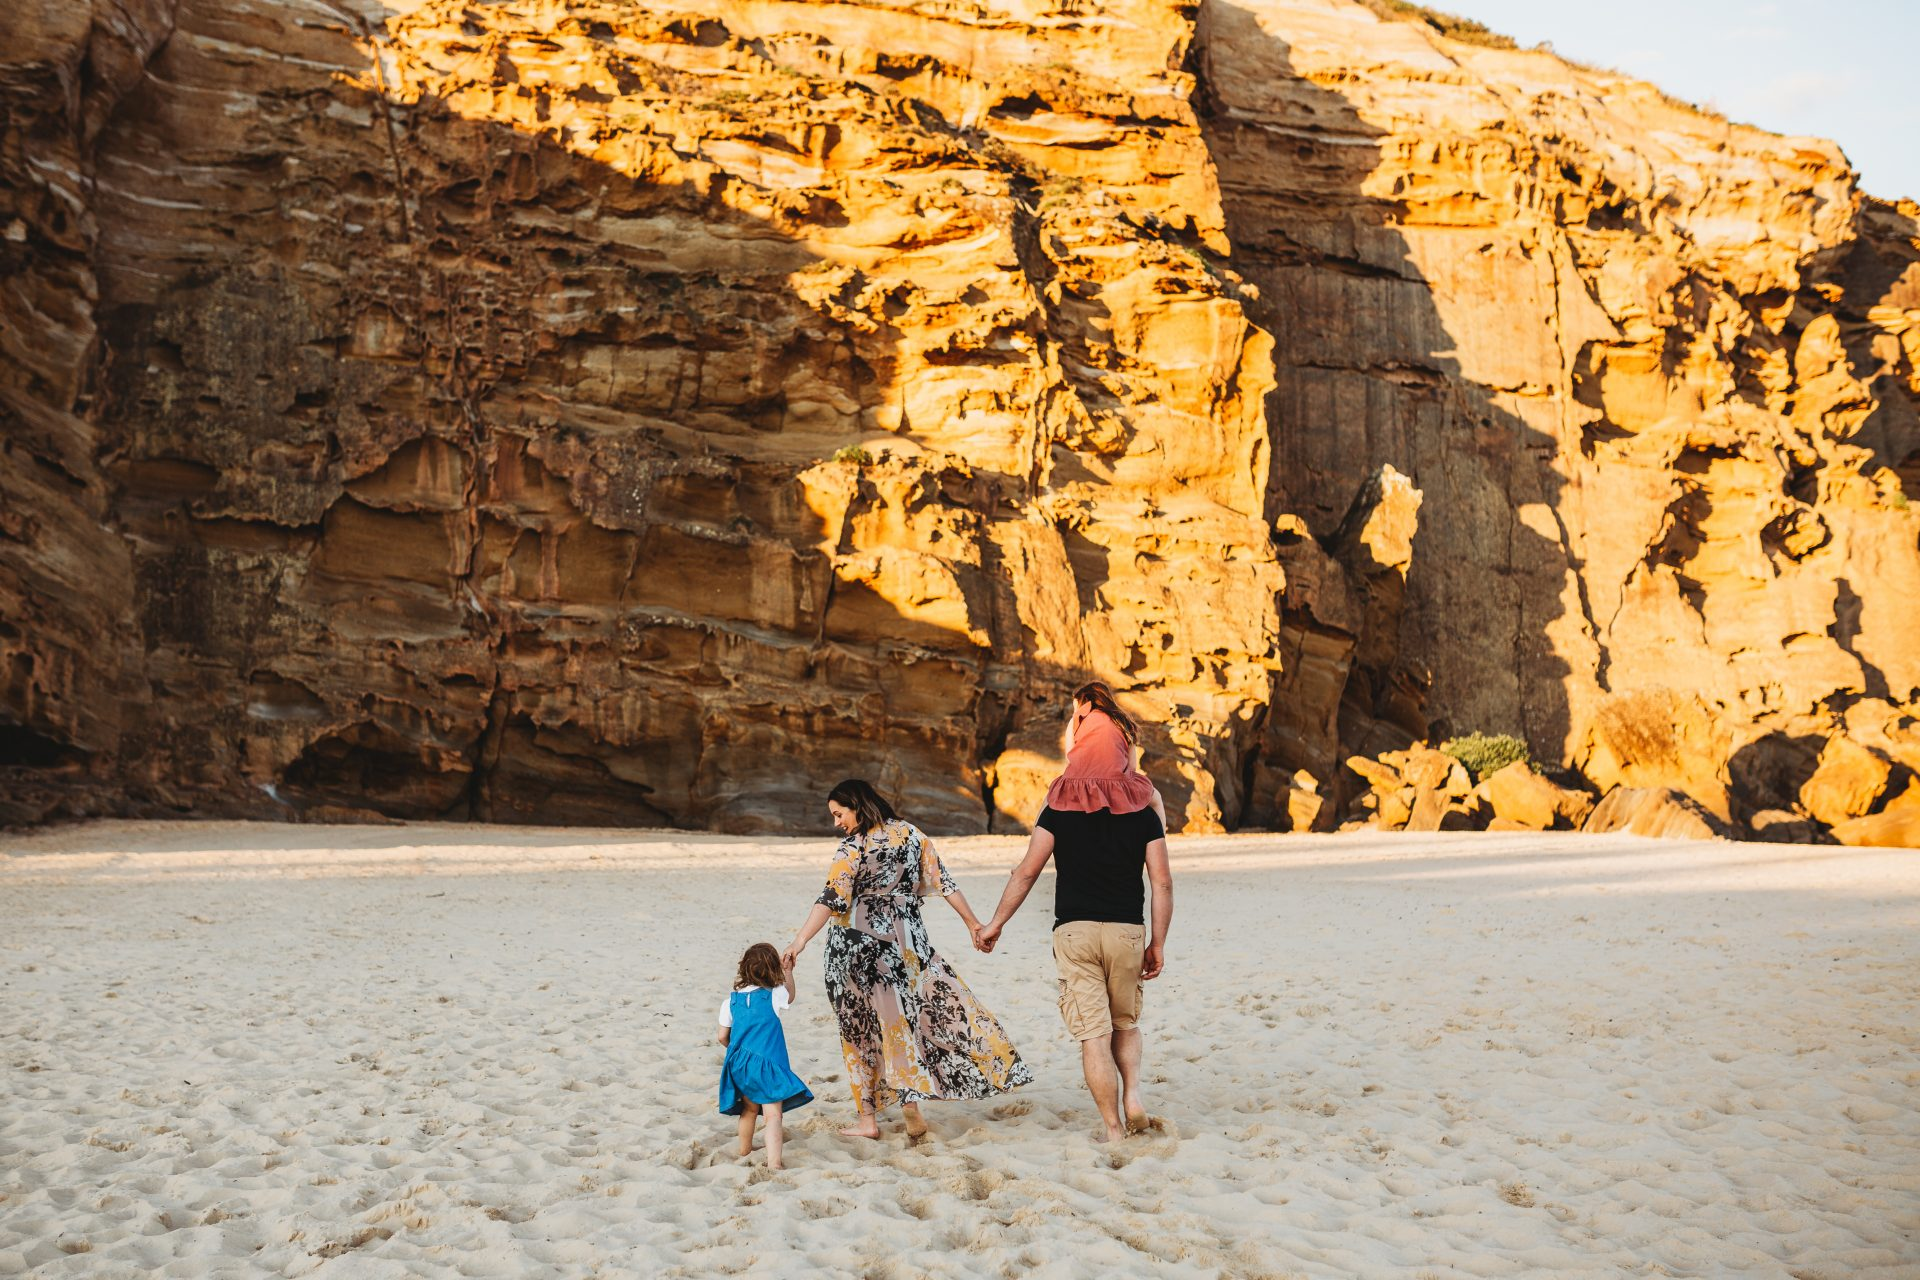 Family walking away from camera, on the beach towards cliff face, while holding hands